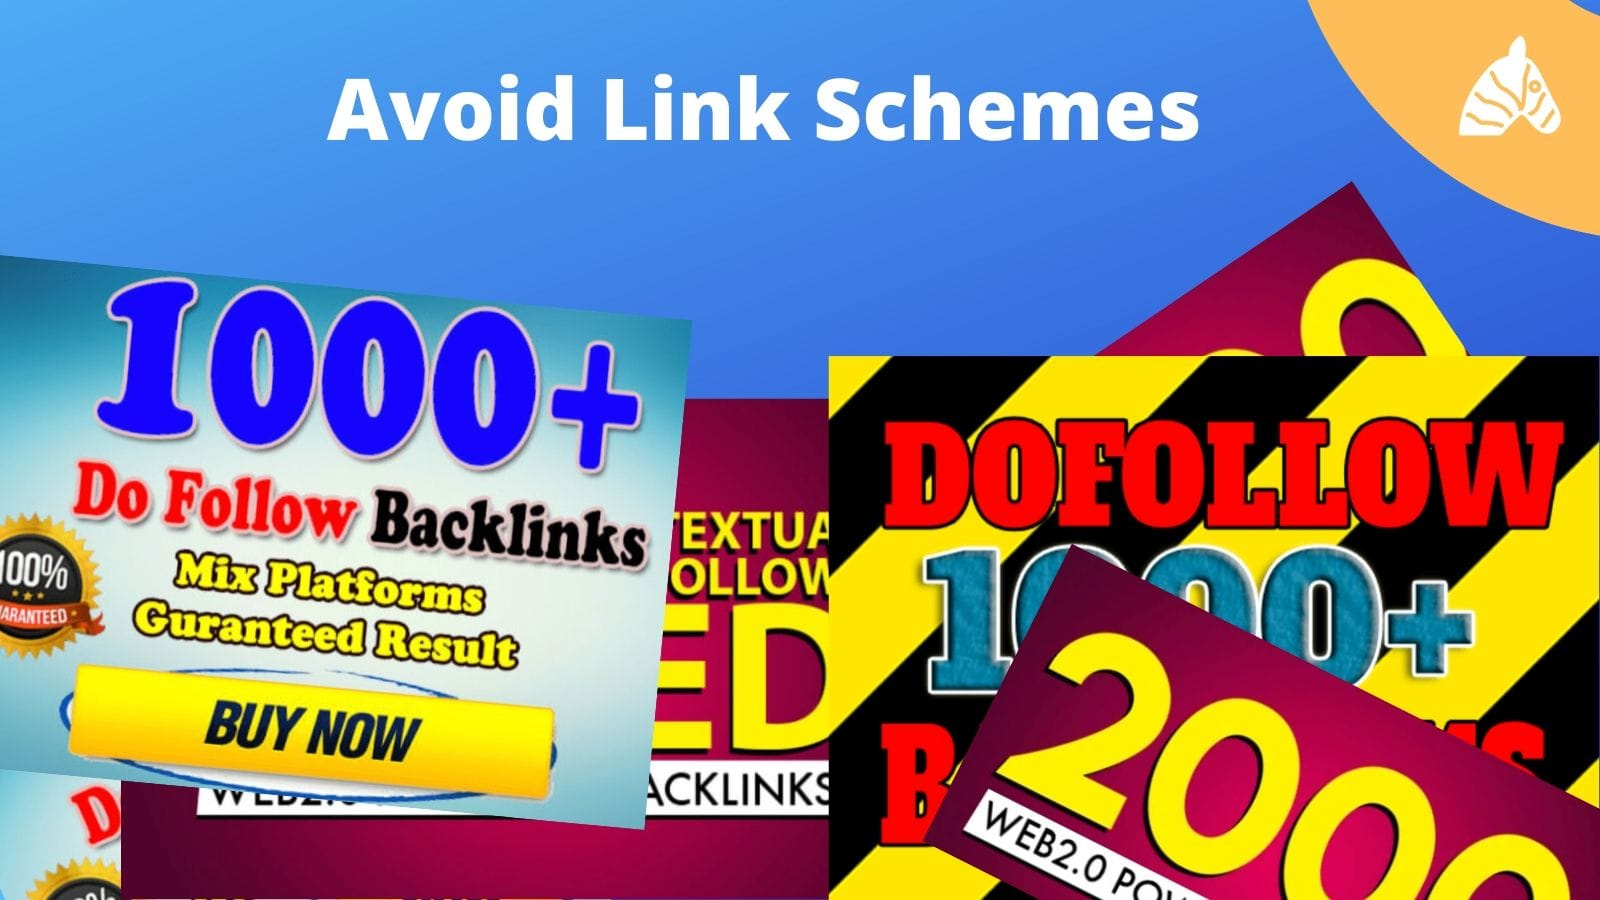 link building schemes that SEO scam companies participate in